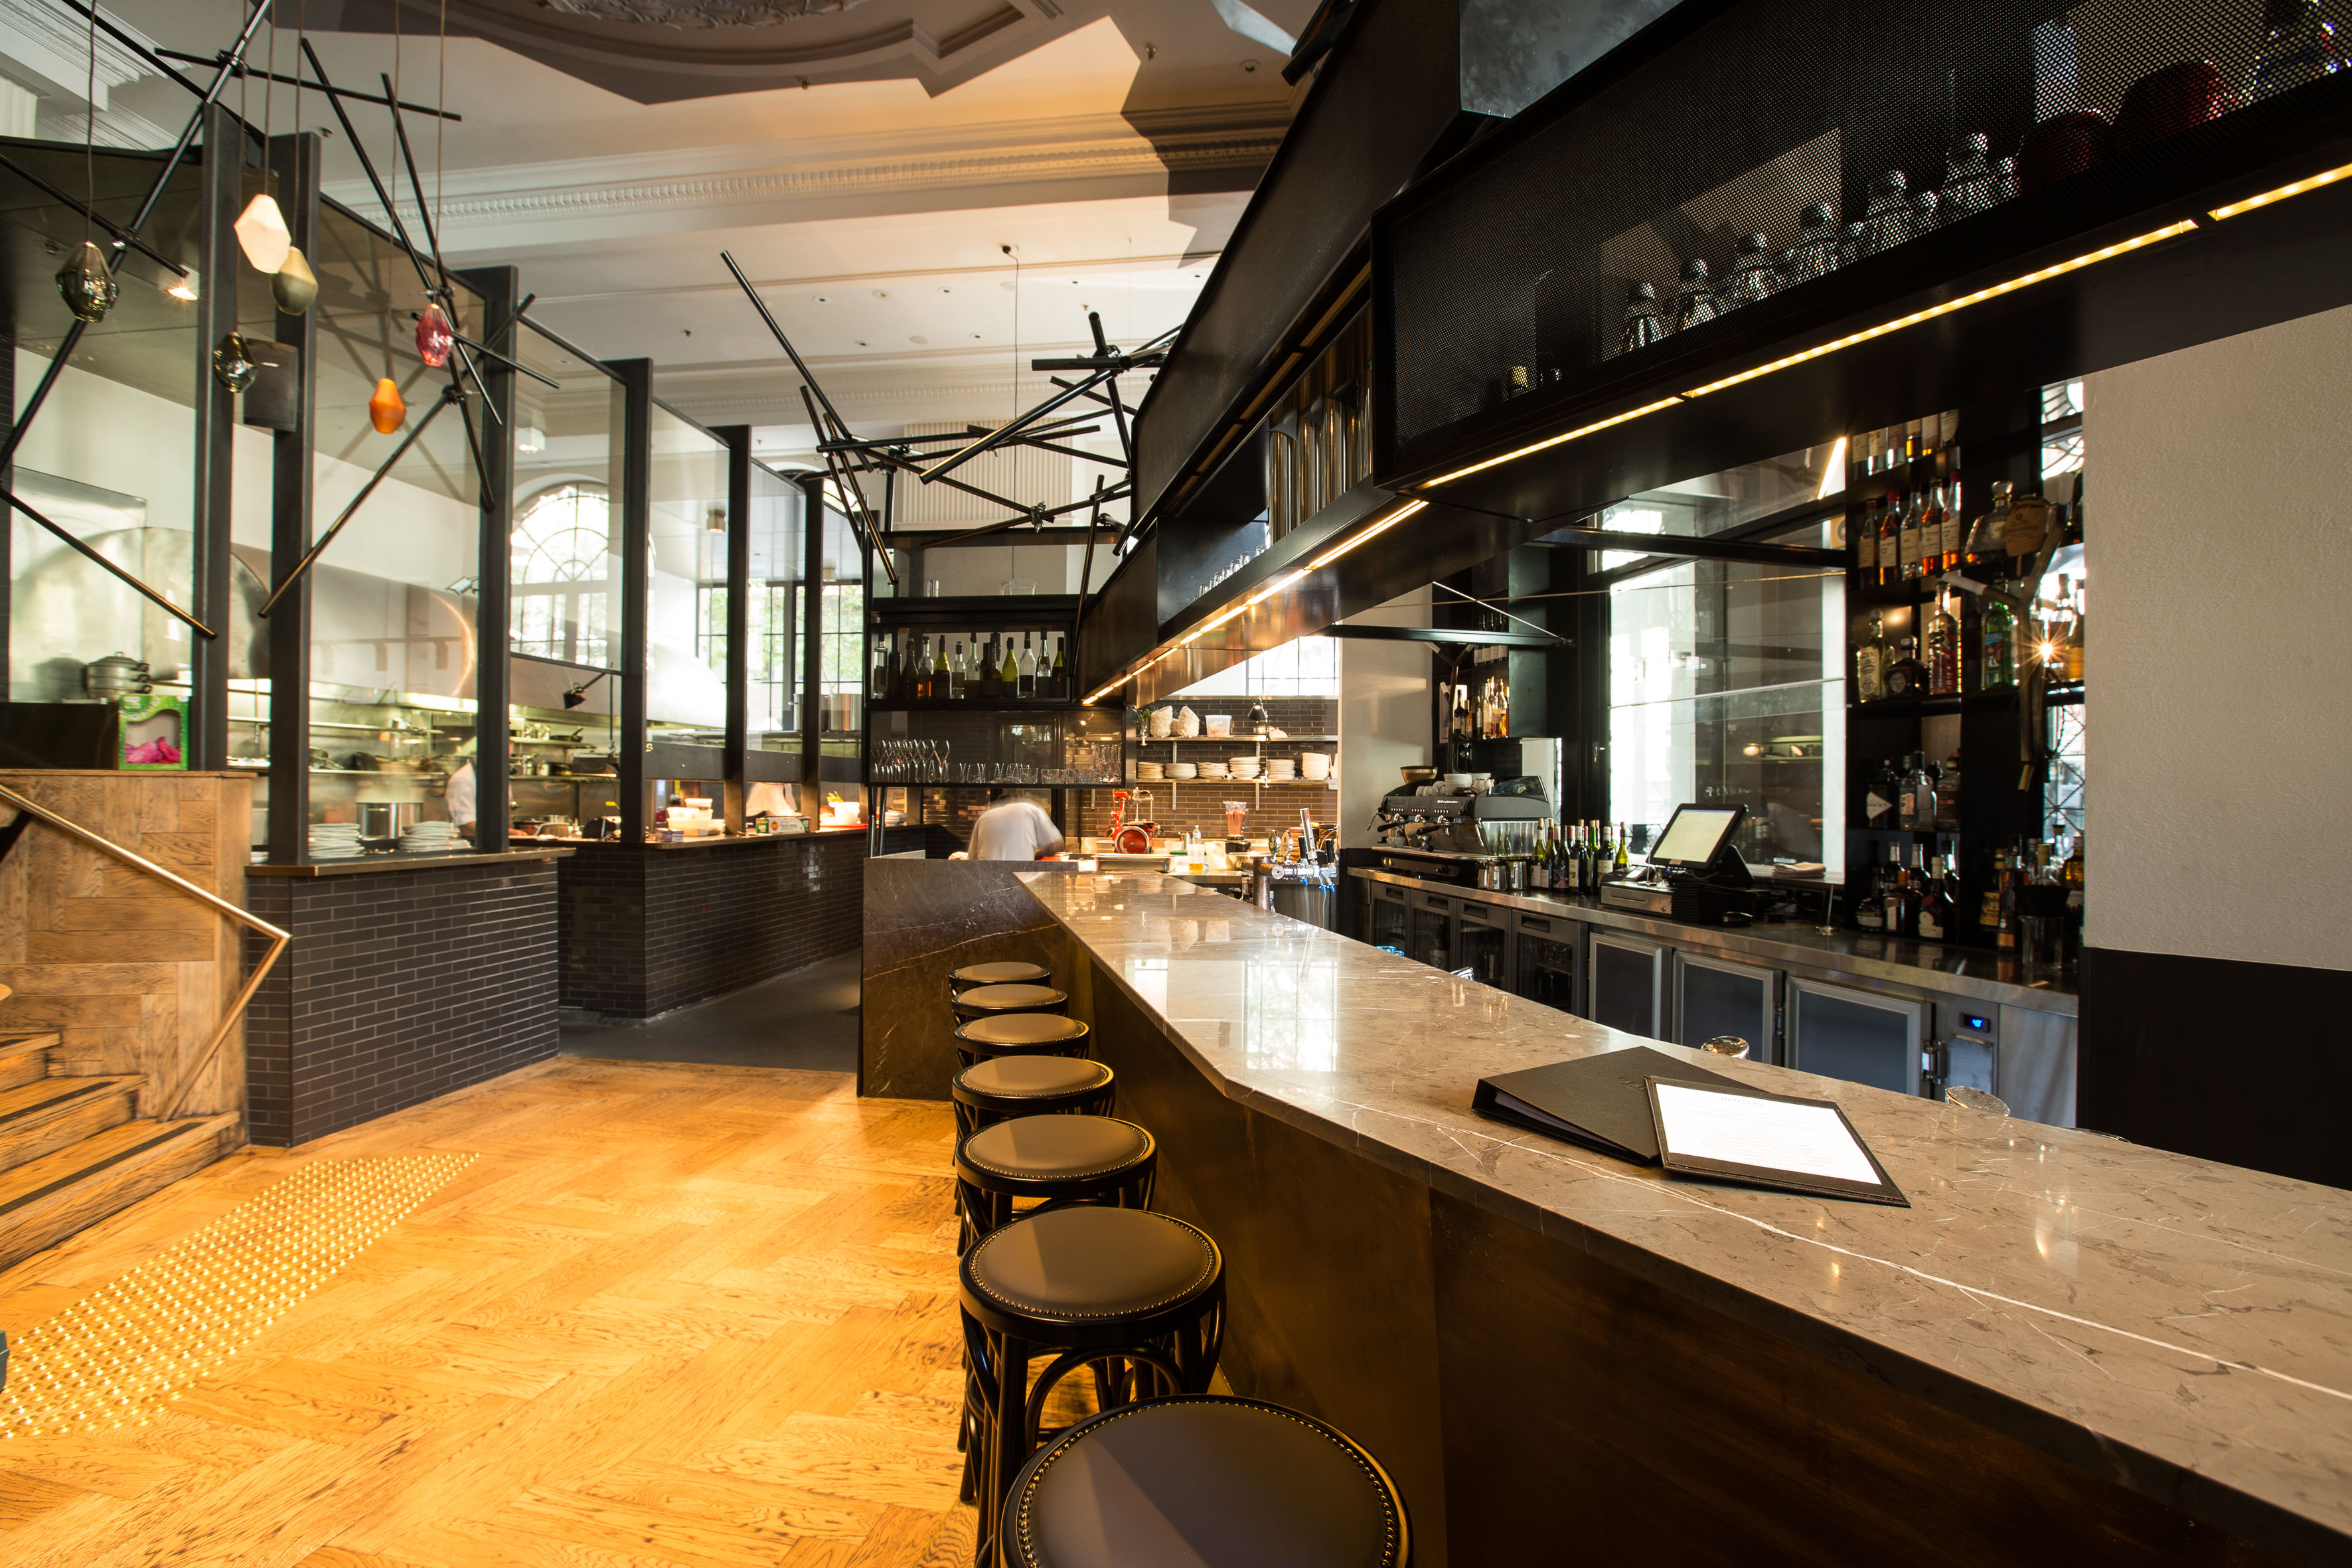 Bentley Restaurant and Bars' strong partnership with Moffat has been in place since 2006, and the new fit-out benefitted from the shared history.